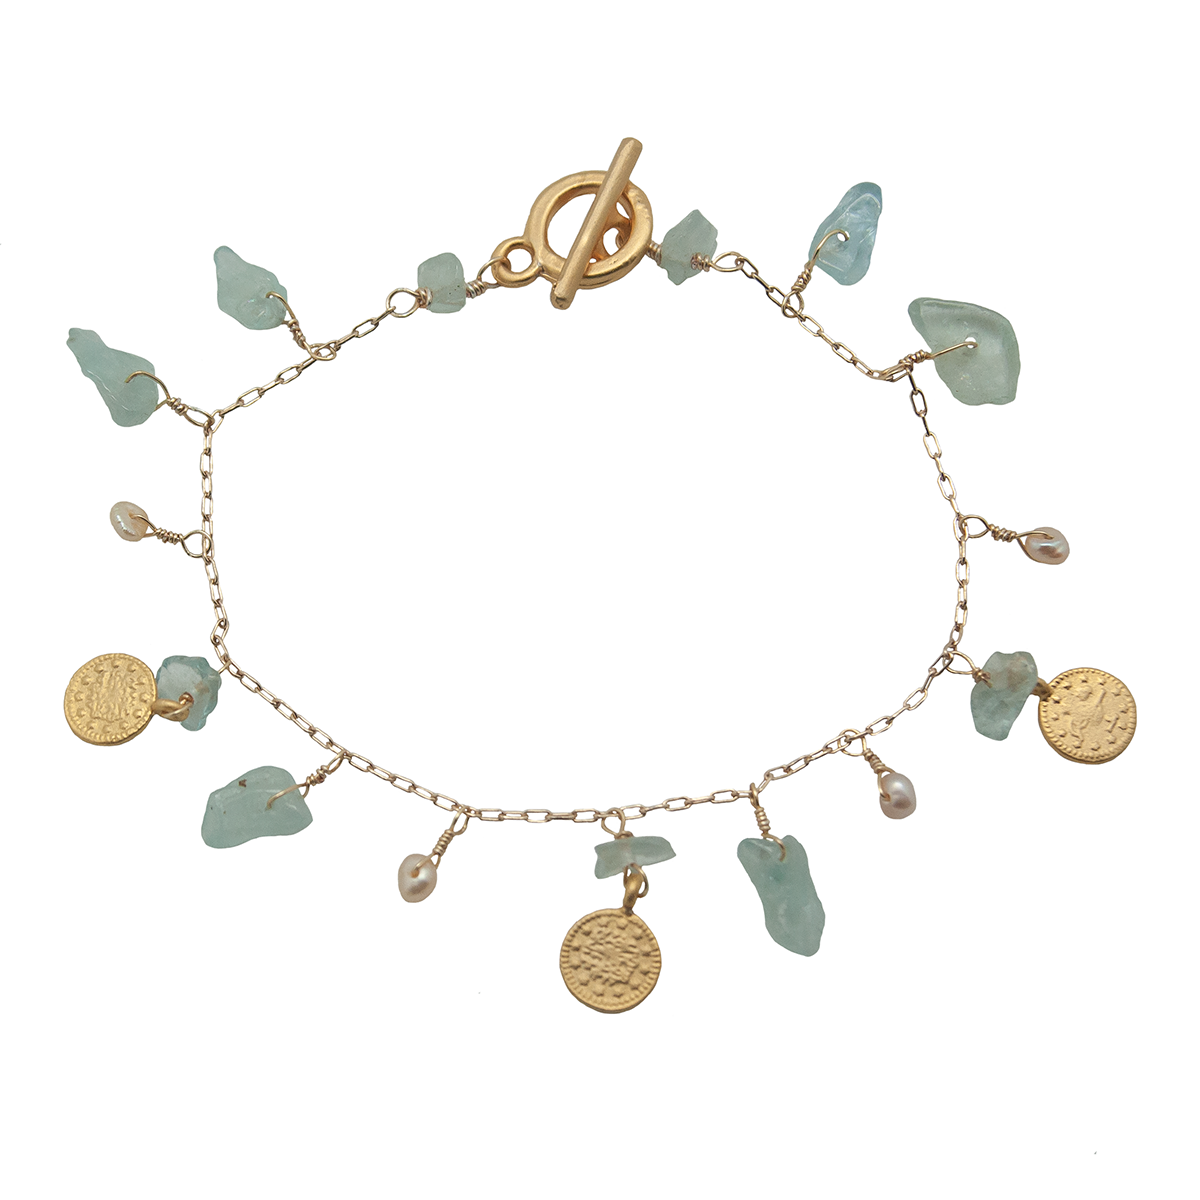 Aquamarine coin charm bracelet on white background